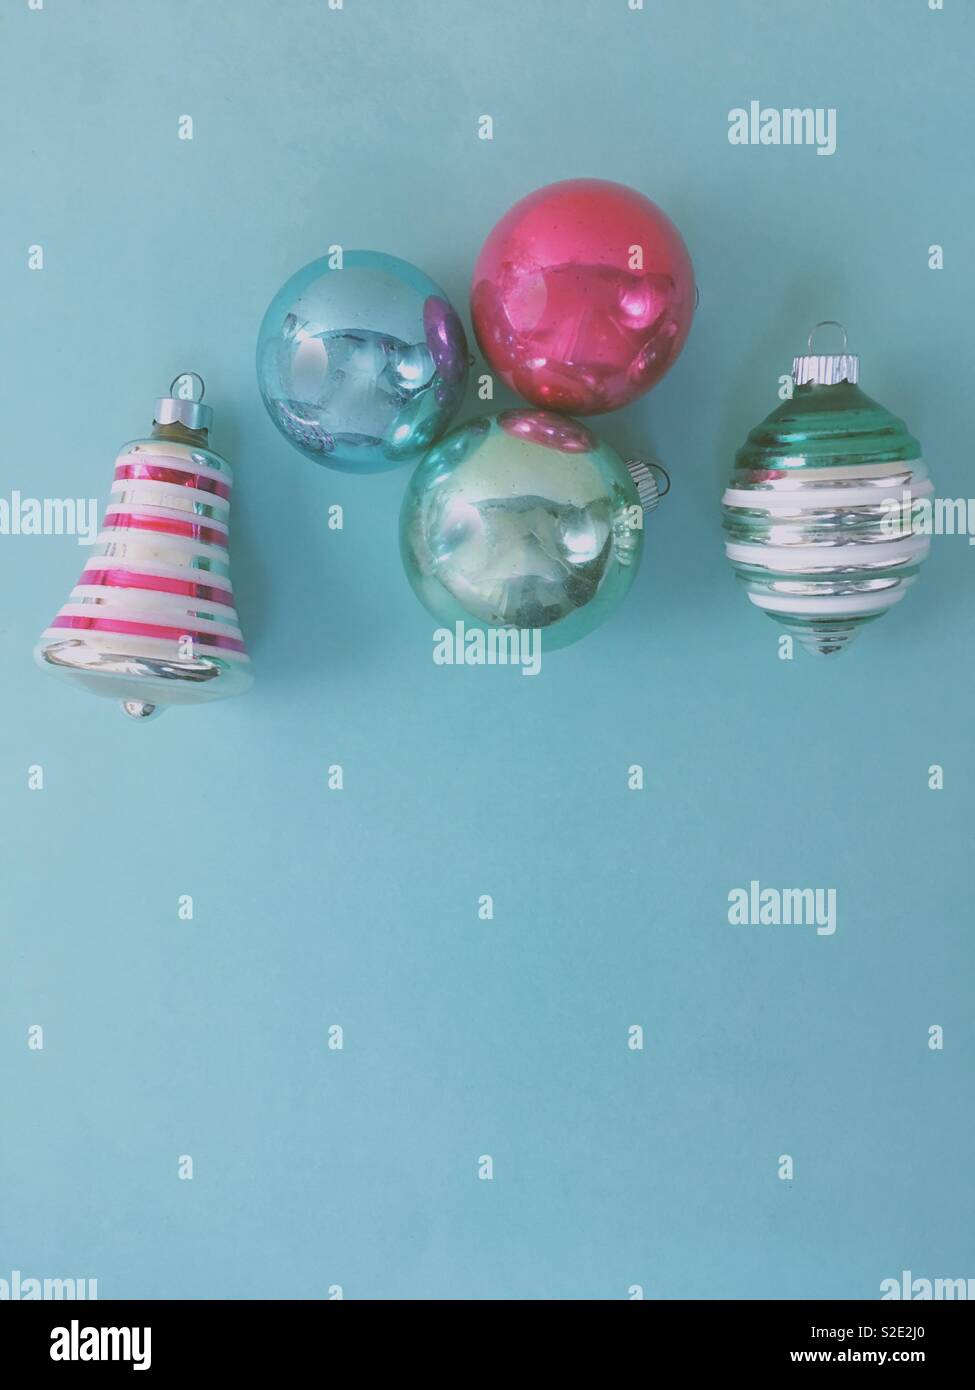 Vintage Christmas Ornaments In Pastel Colors On A Light Blue